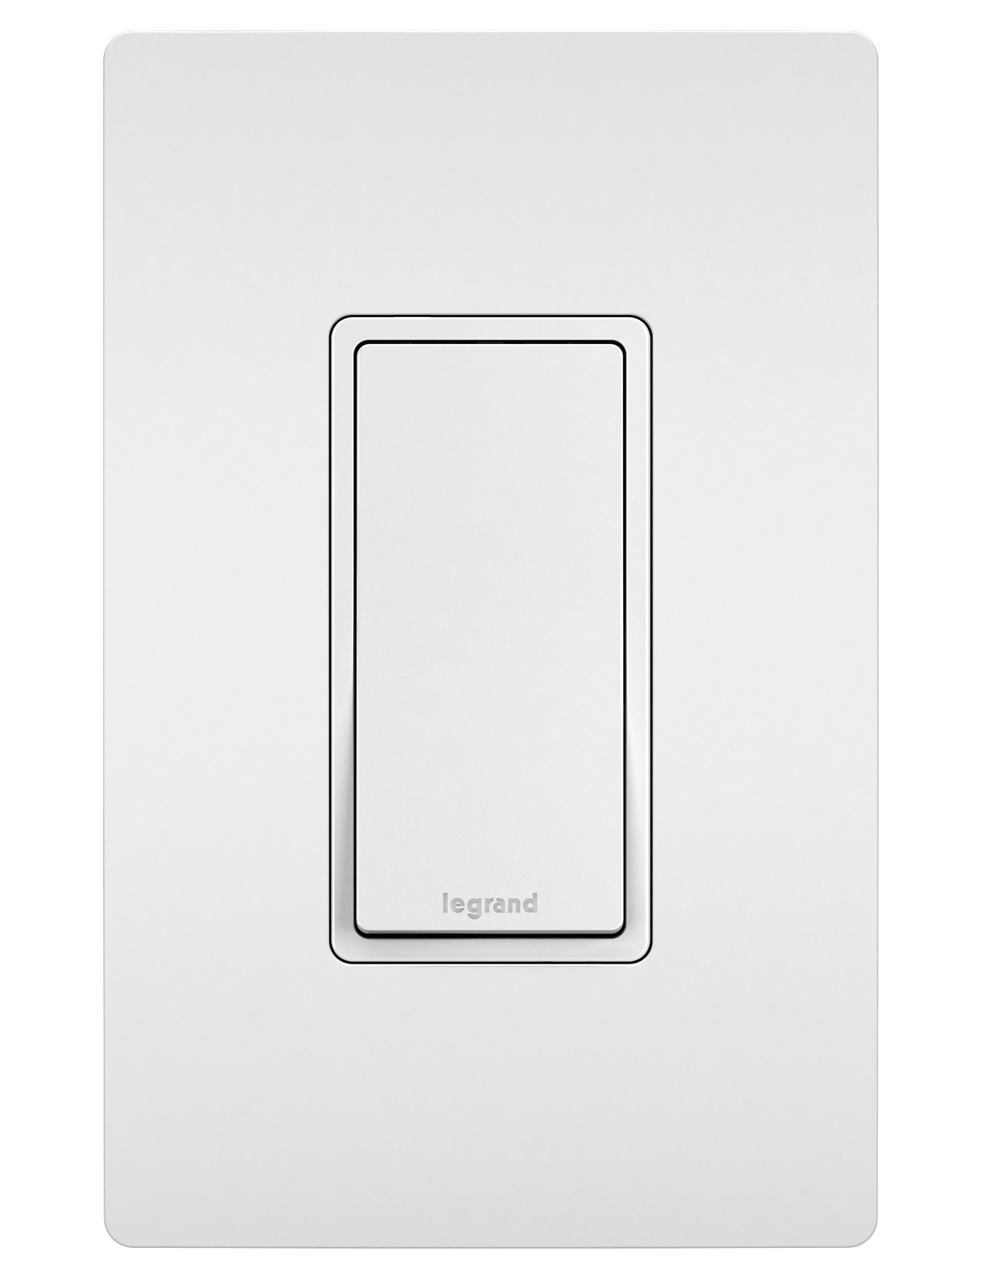 intercom room unit  indoor  white